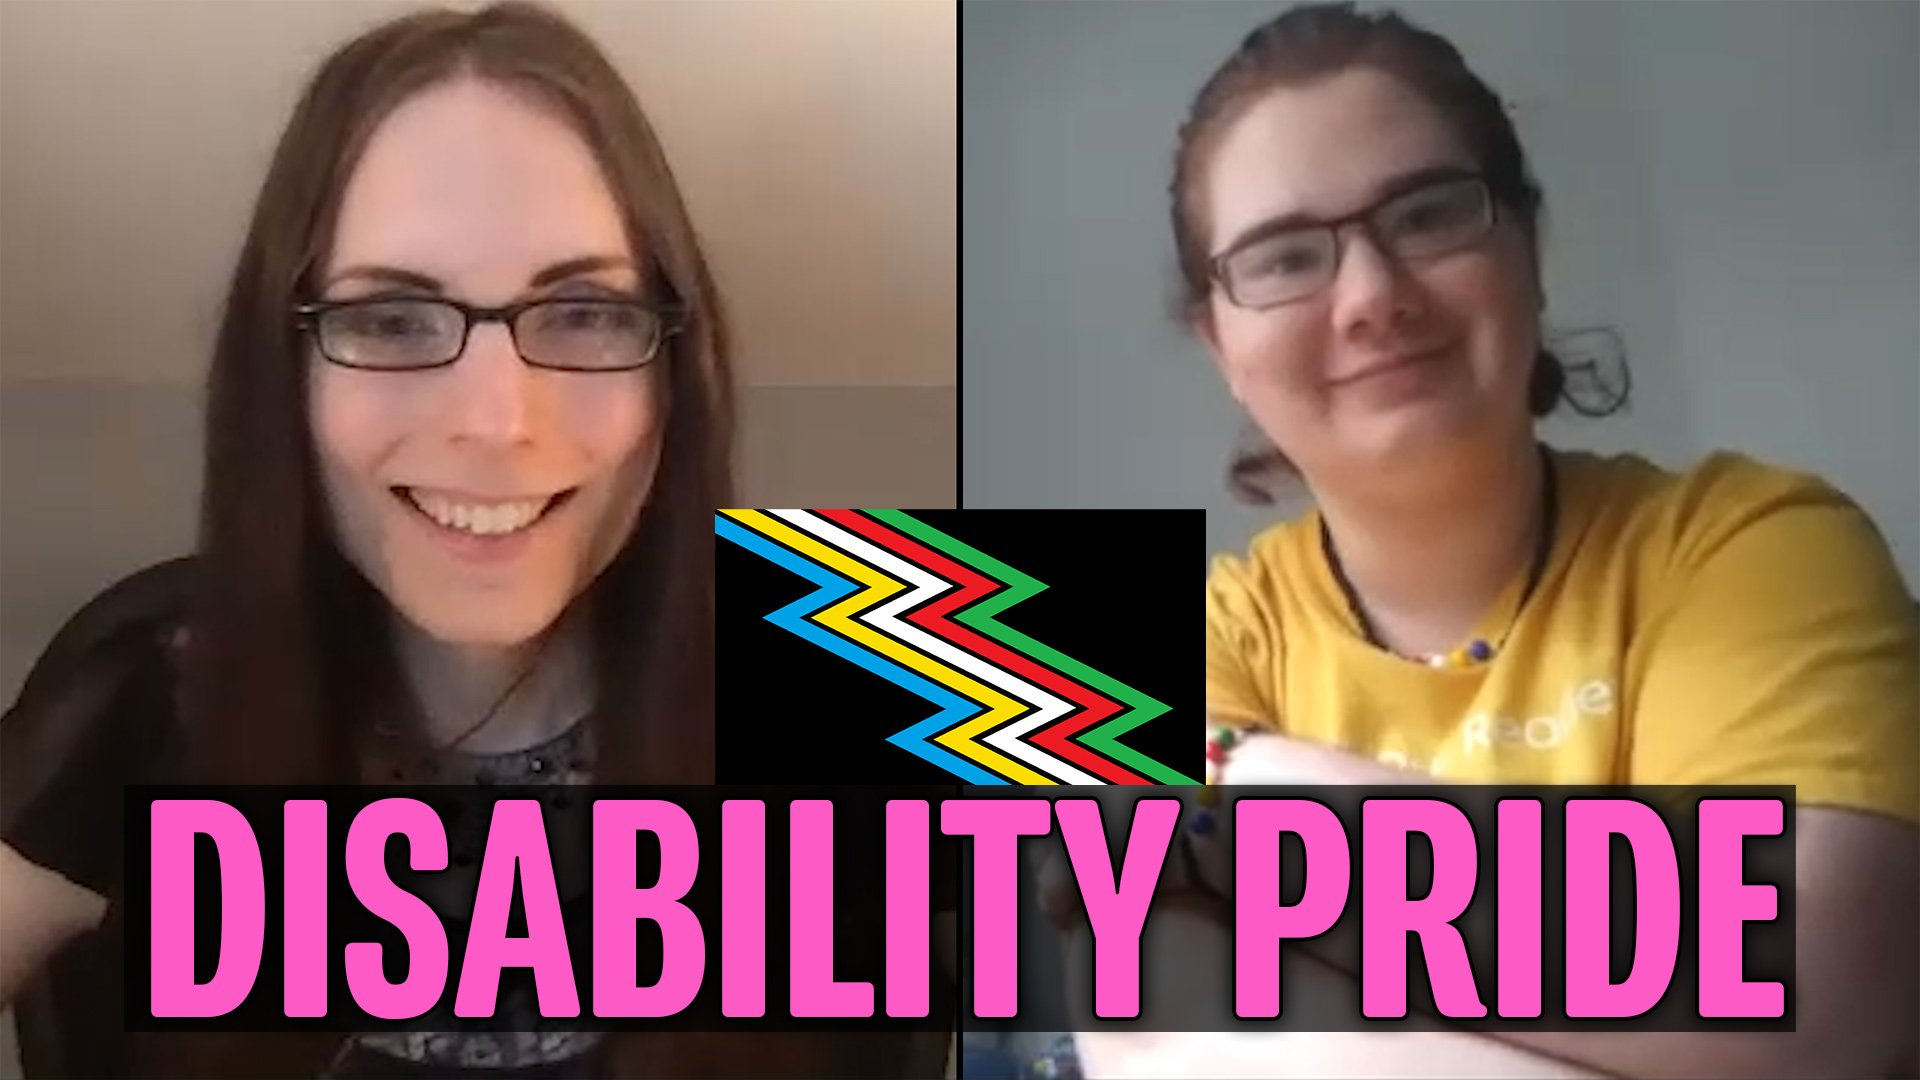 Bringing Awareness to Disability Pride (with Seoirse)